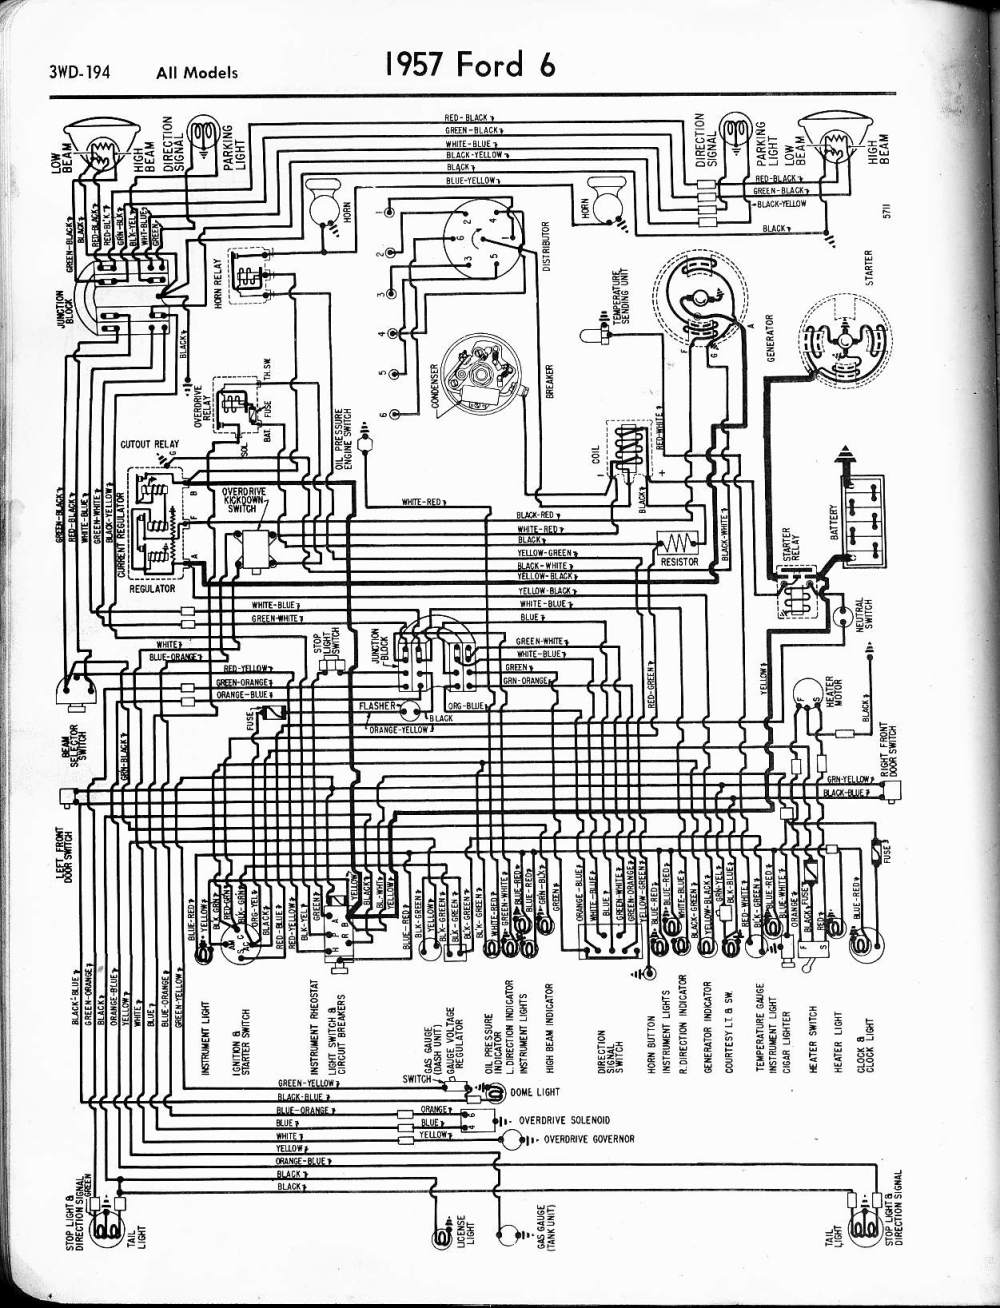 medium resolution of 1980 ford thunderbird wiring diagram wiring diagram third level 1956 ford f100 wiring diagram 1958 f100